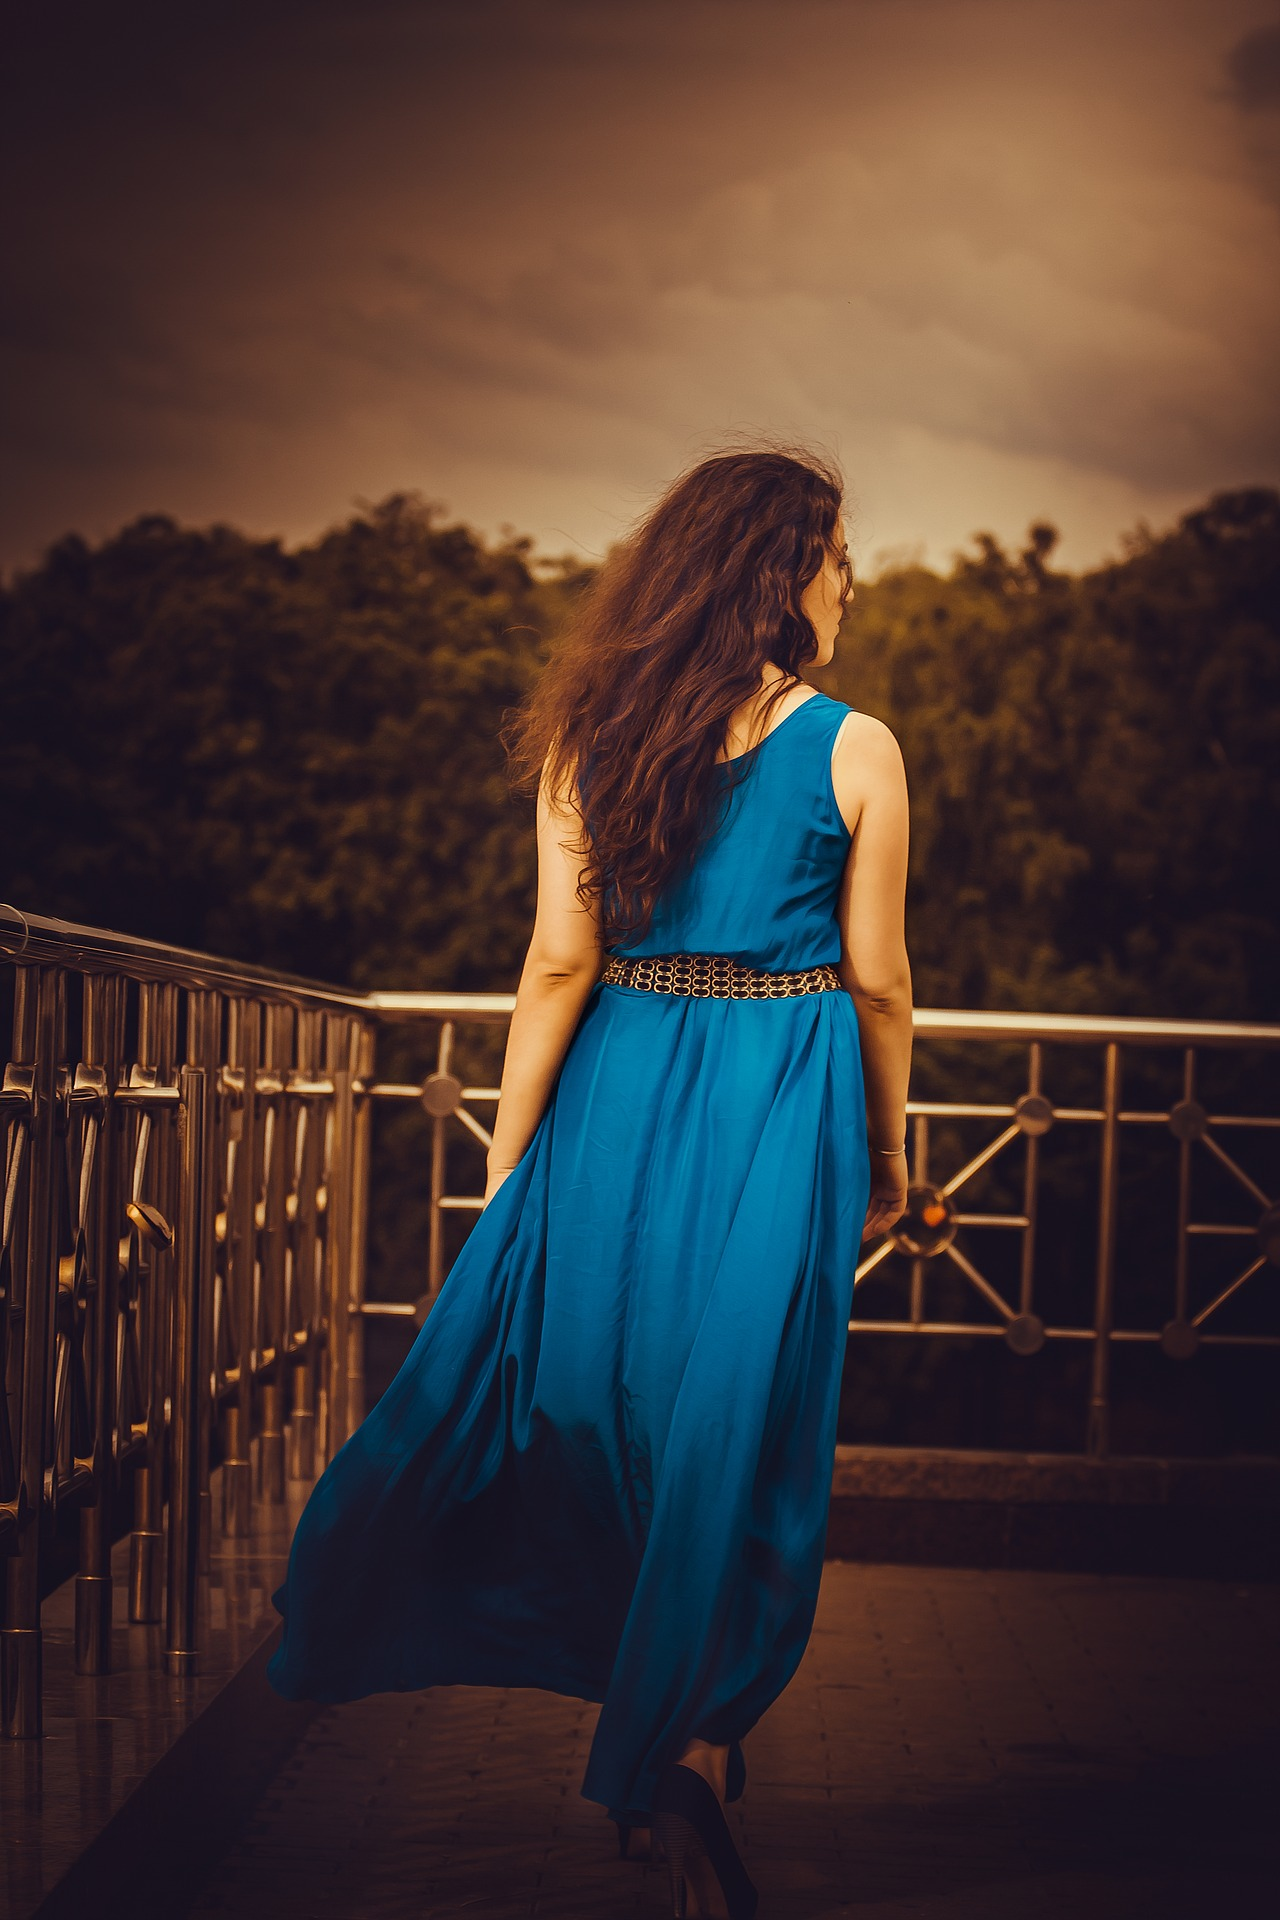 A girl in a blue dress from the back, for a Masturbation Monday post about fucking after a wedding